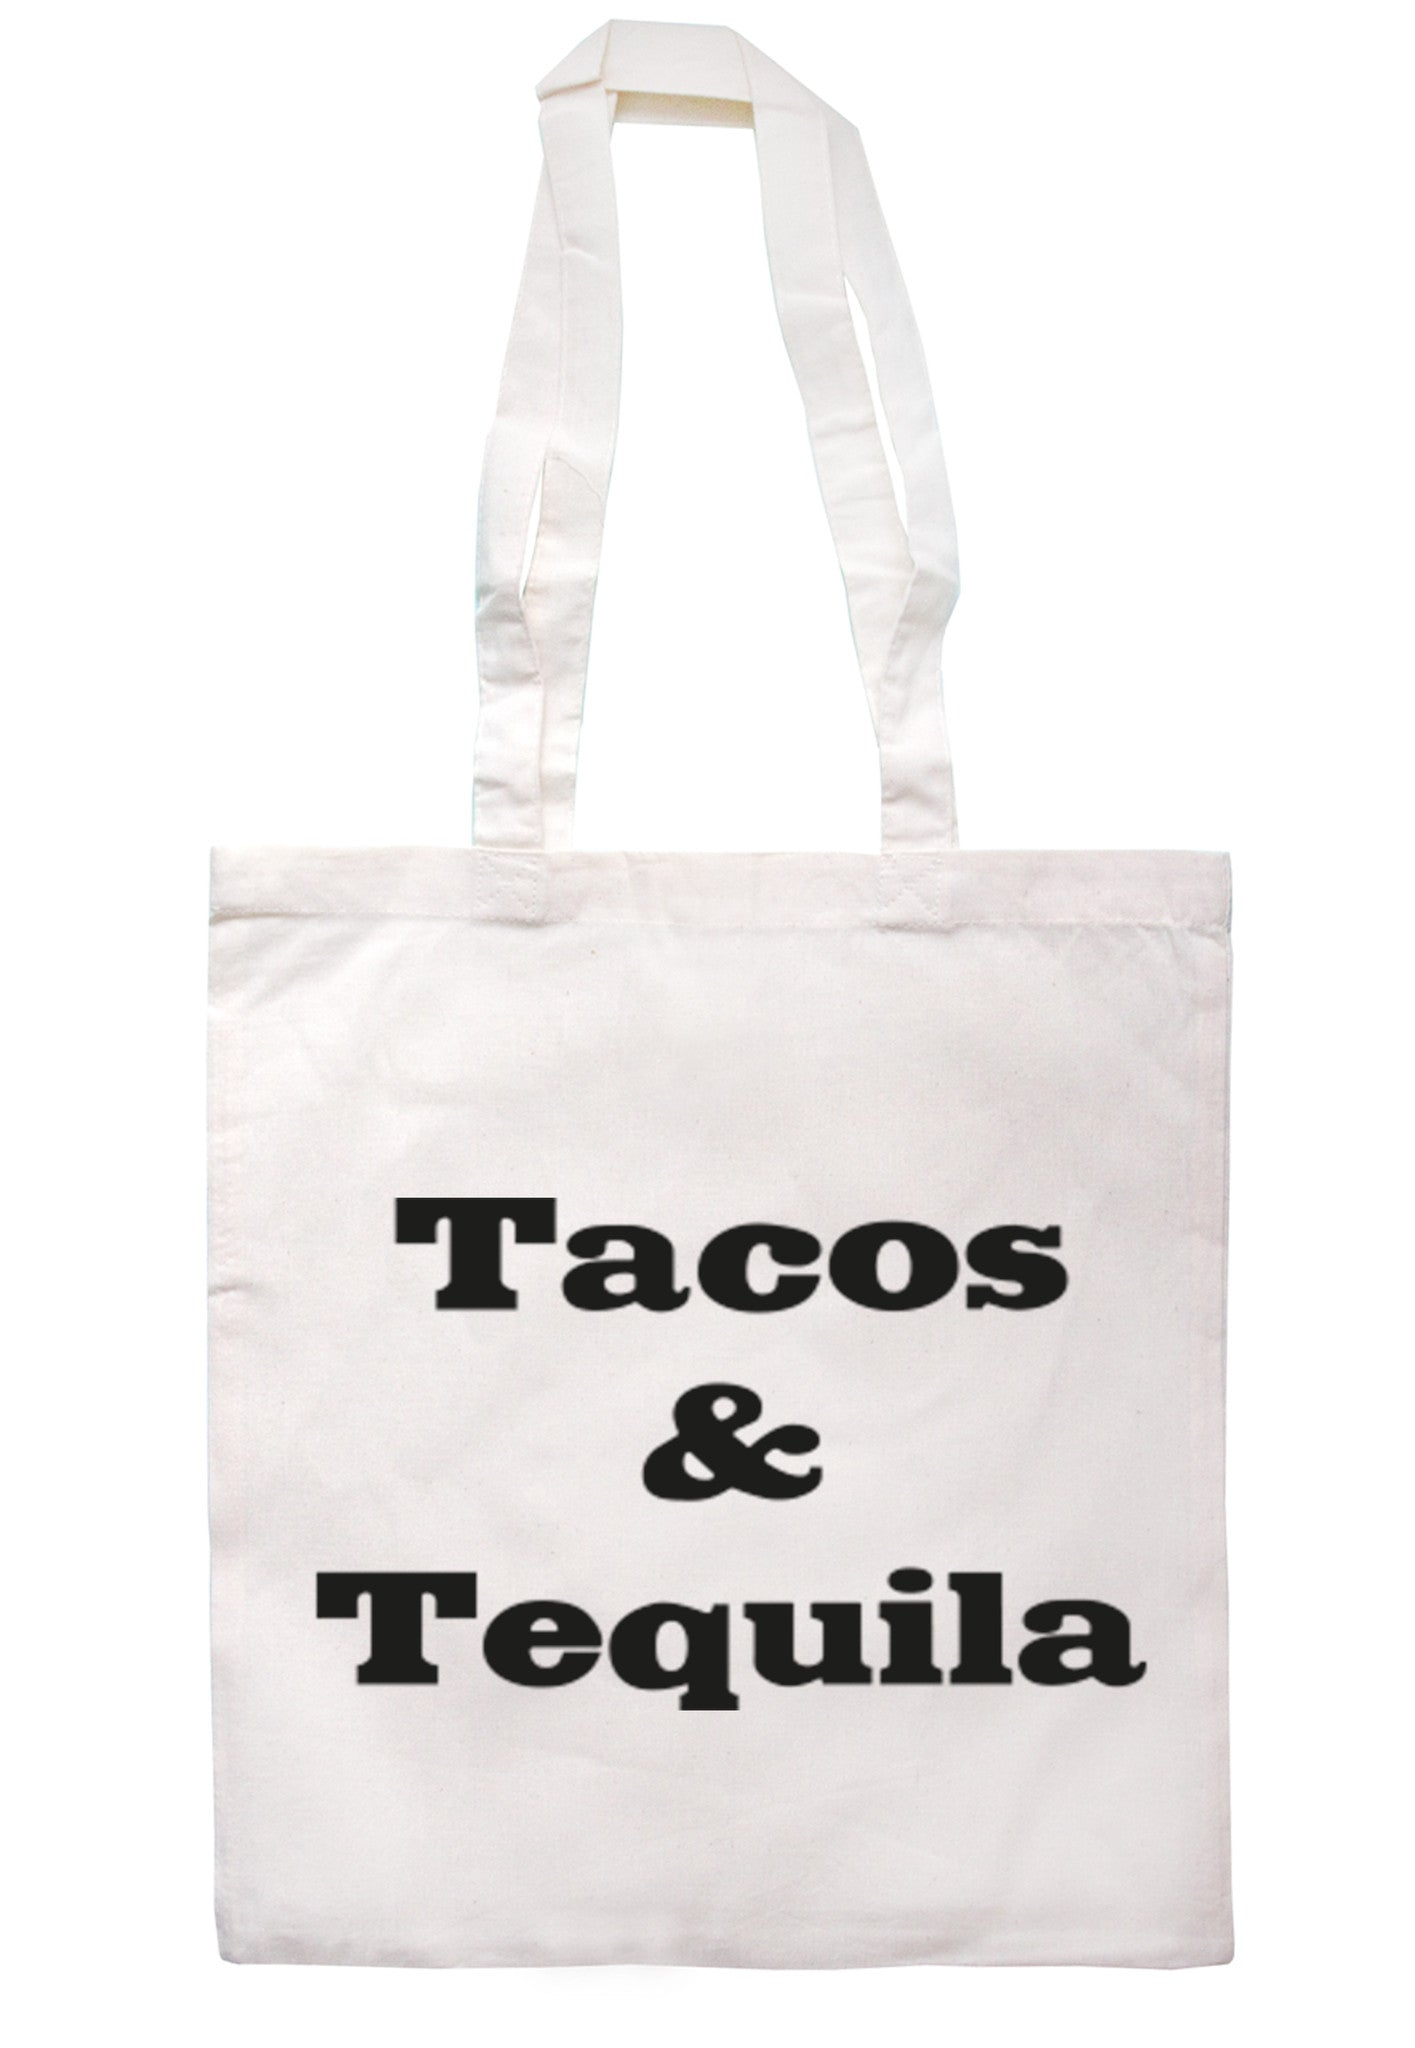 Tacos & Tequila Tote Bag TB0027 - Illustrated Identity Ltd.